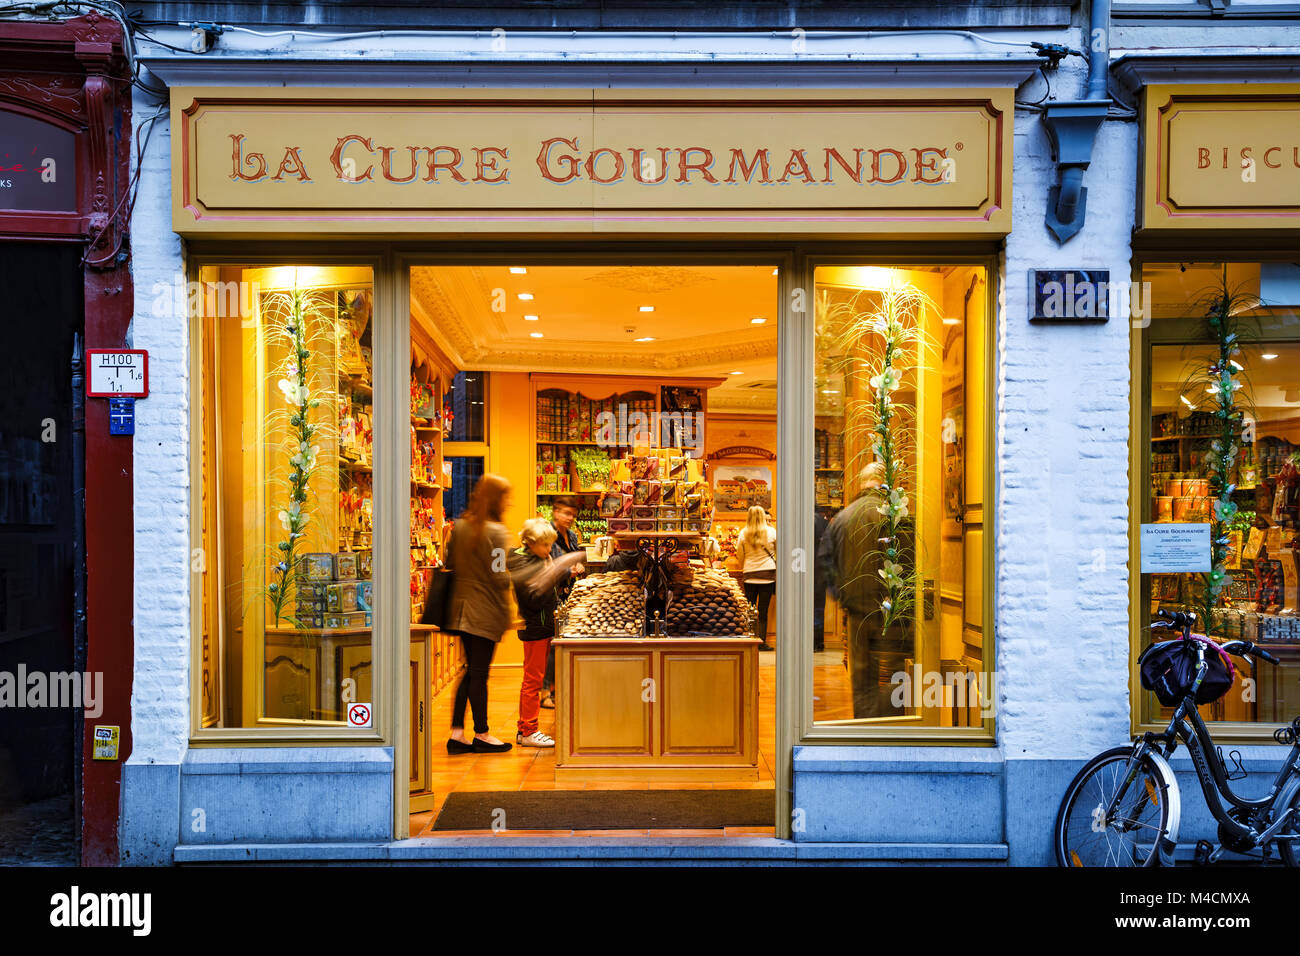 La Cure Gourmande candy store, Bruges, Belgium - Stock Image